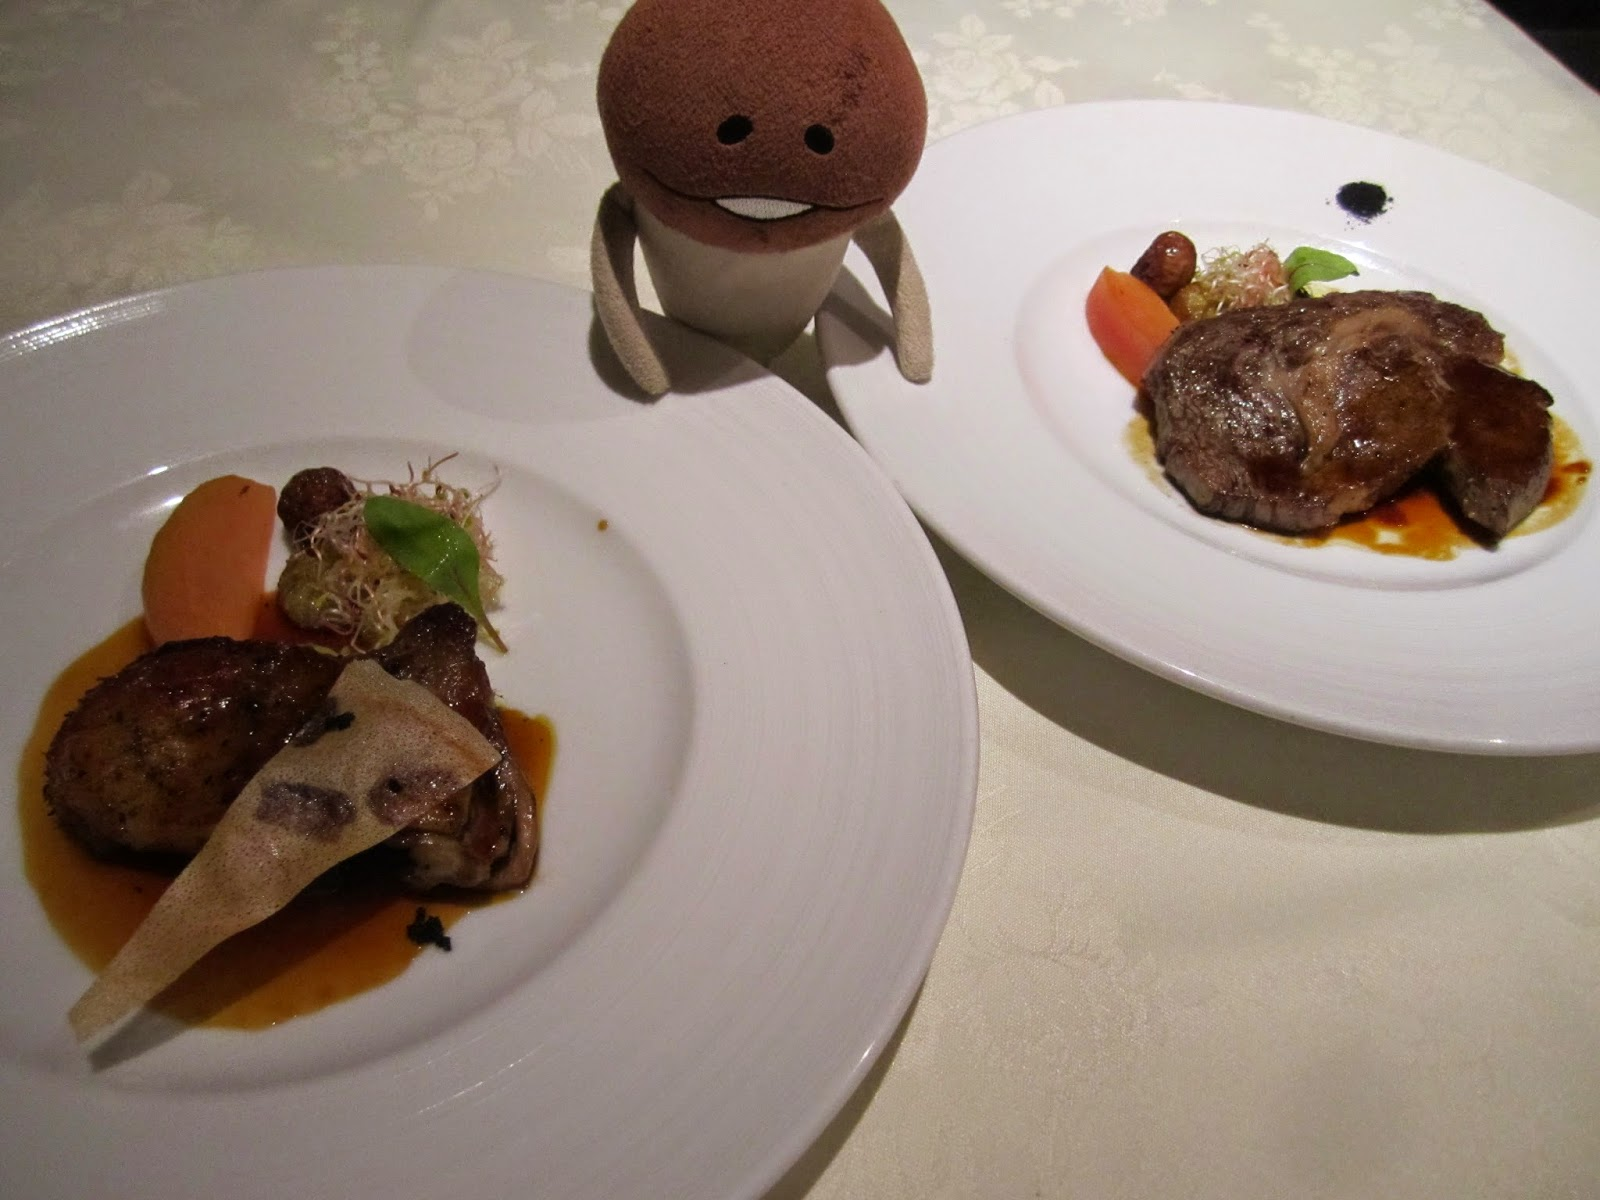 Hotel Neuschloss Otaru Blau Kuste duck confit with vinegar and red wine sauce Wagyu filet steak (120g)